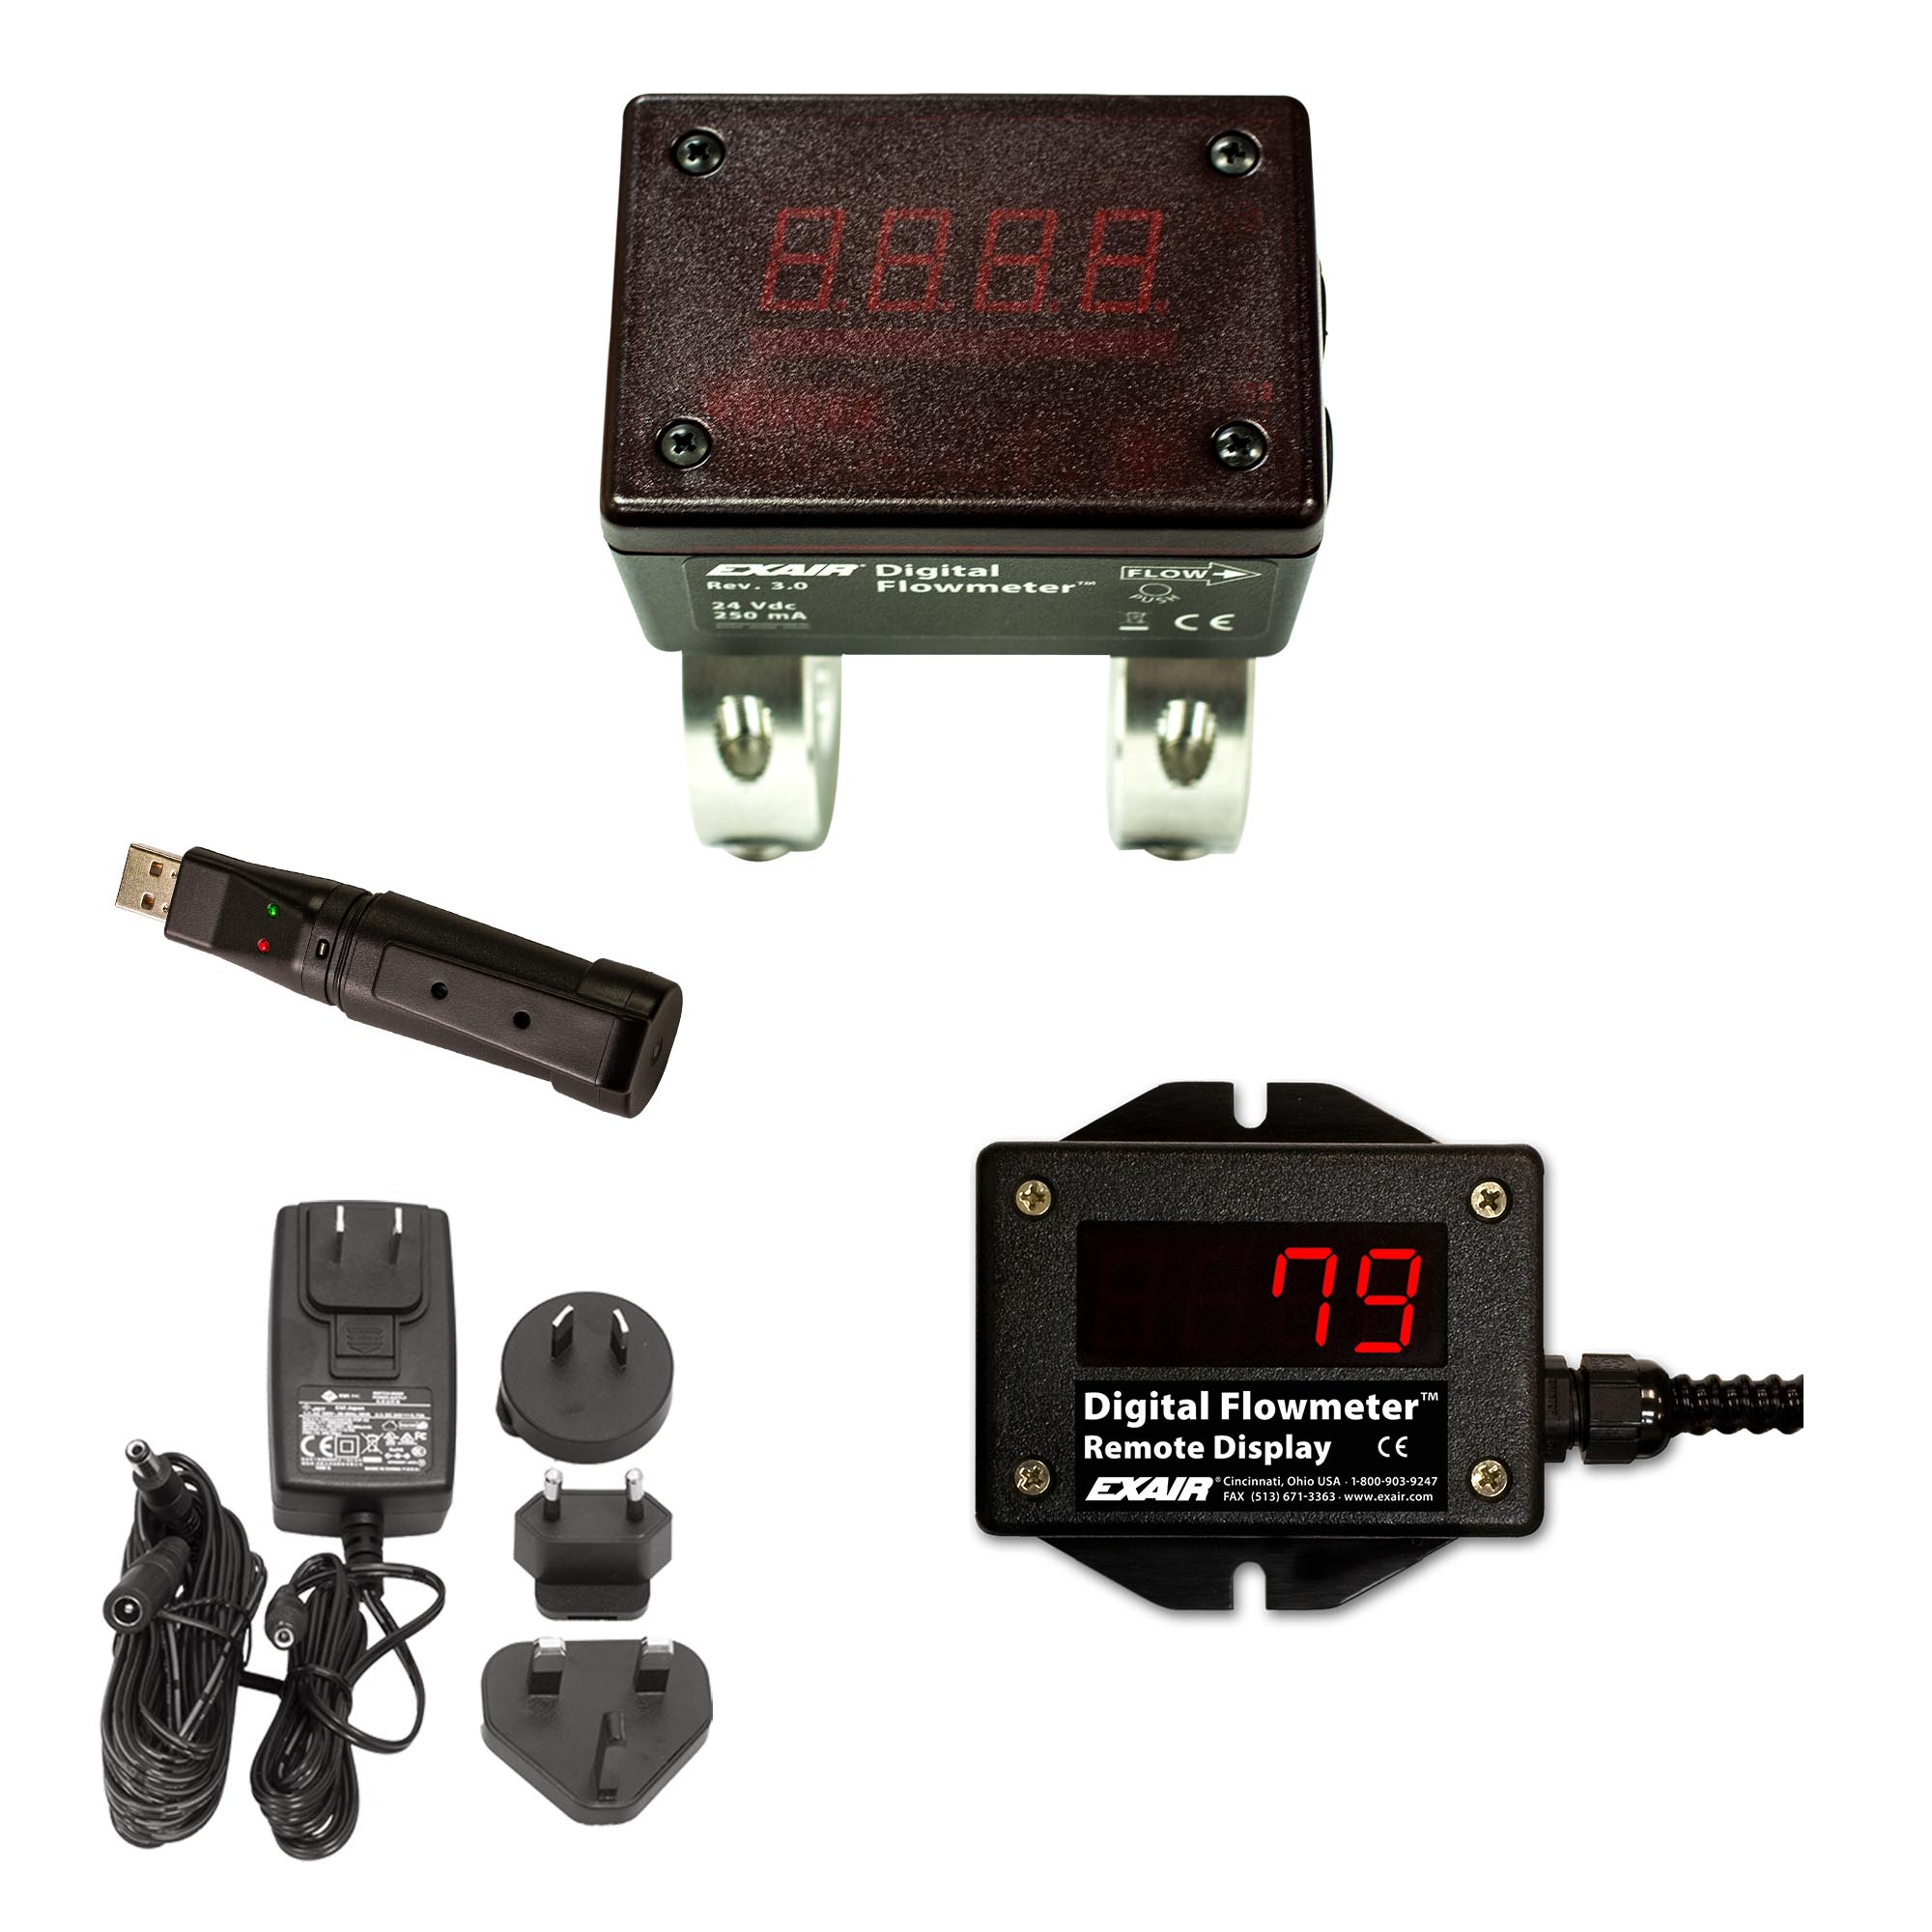 Digital Flowmeter with USB Data Logger kit